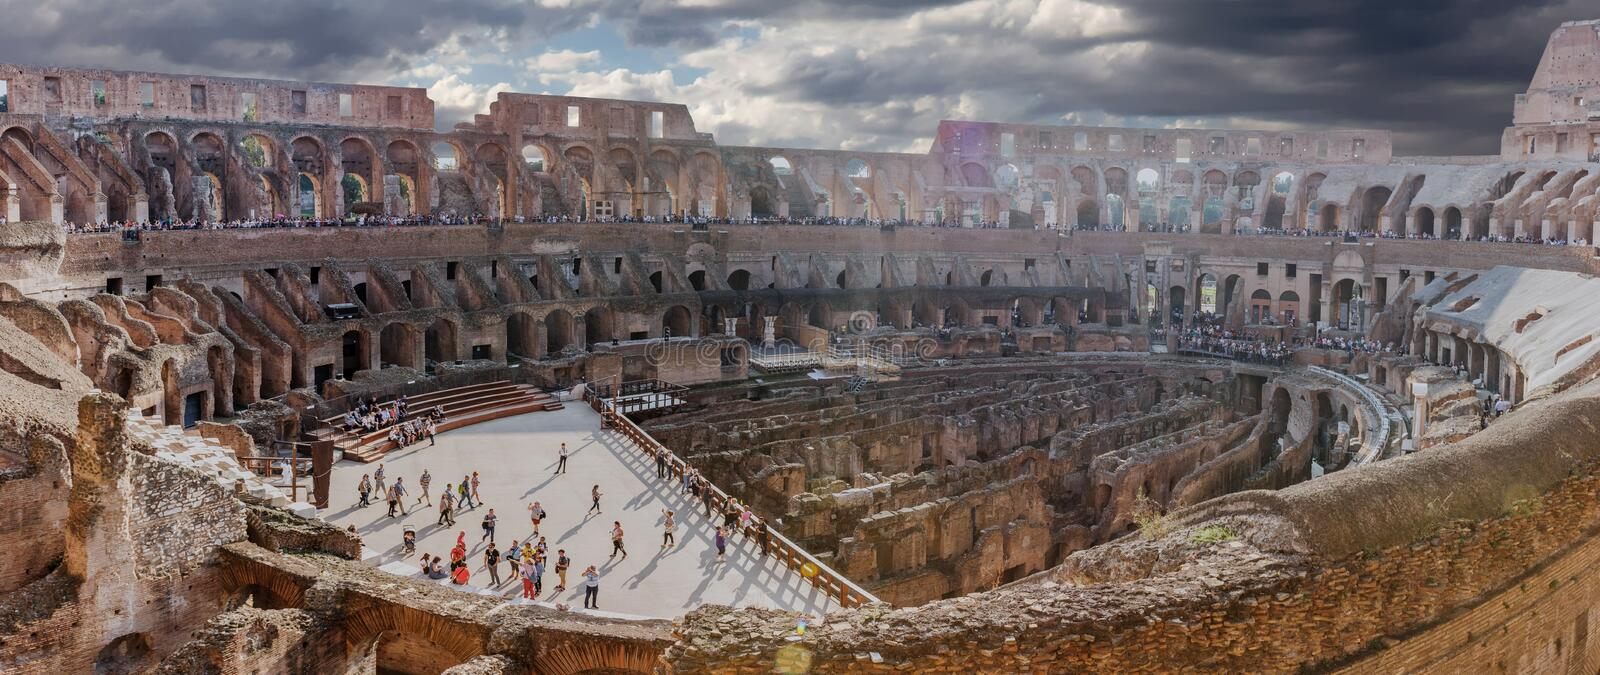 Panorama of the interior and the arena of the Colosseum, Rome, Italy royalty free stock images